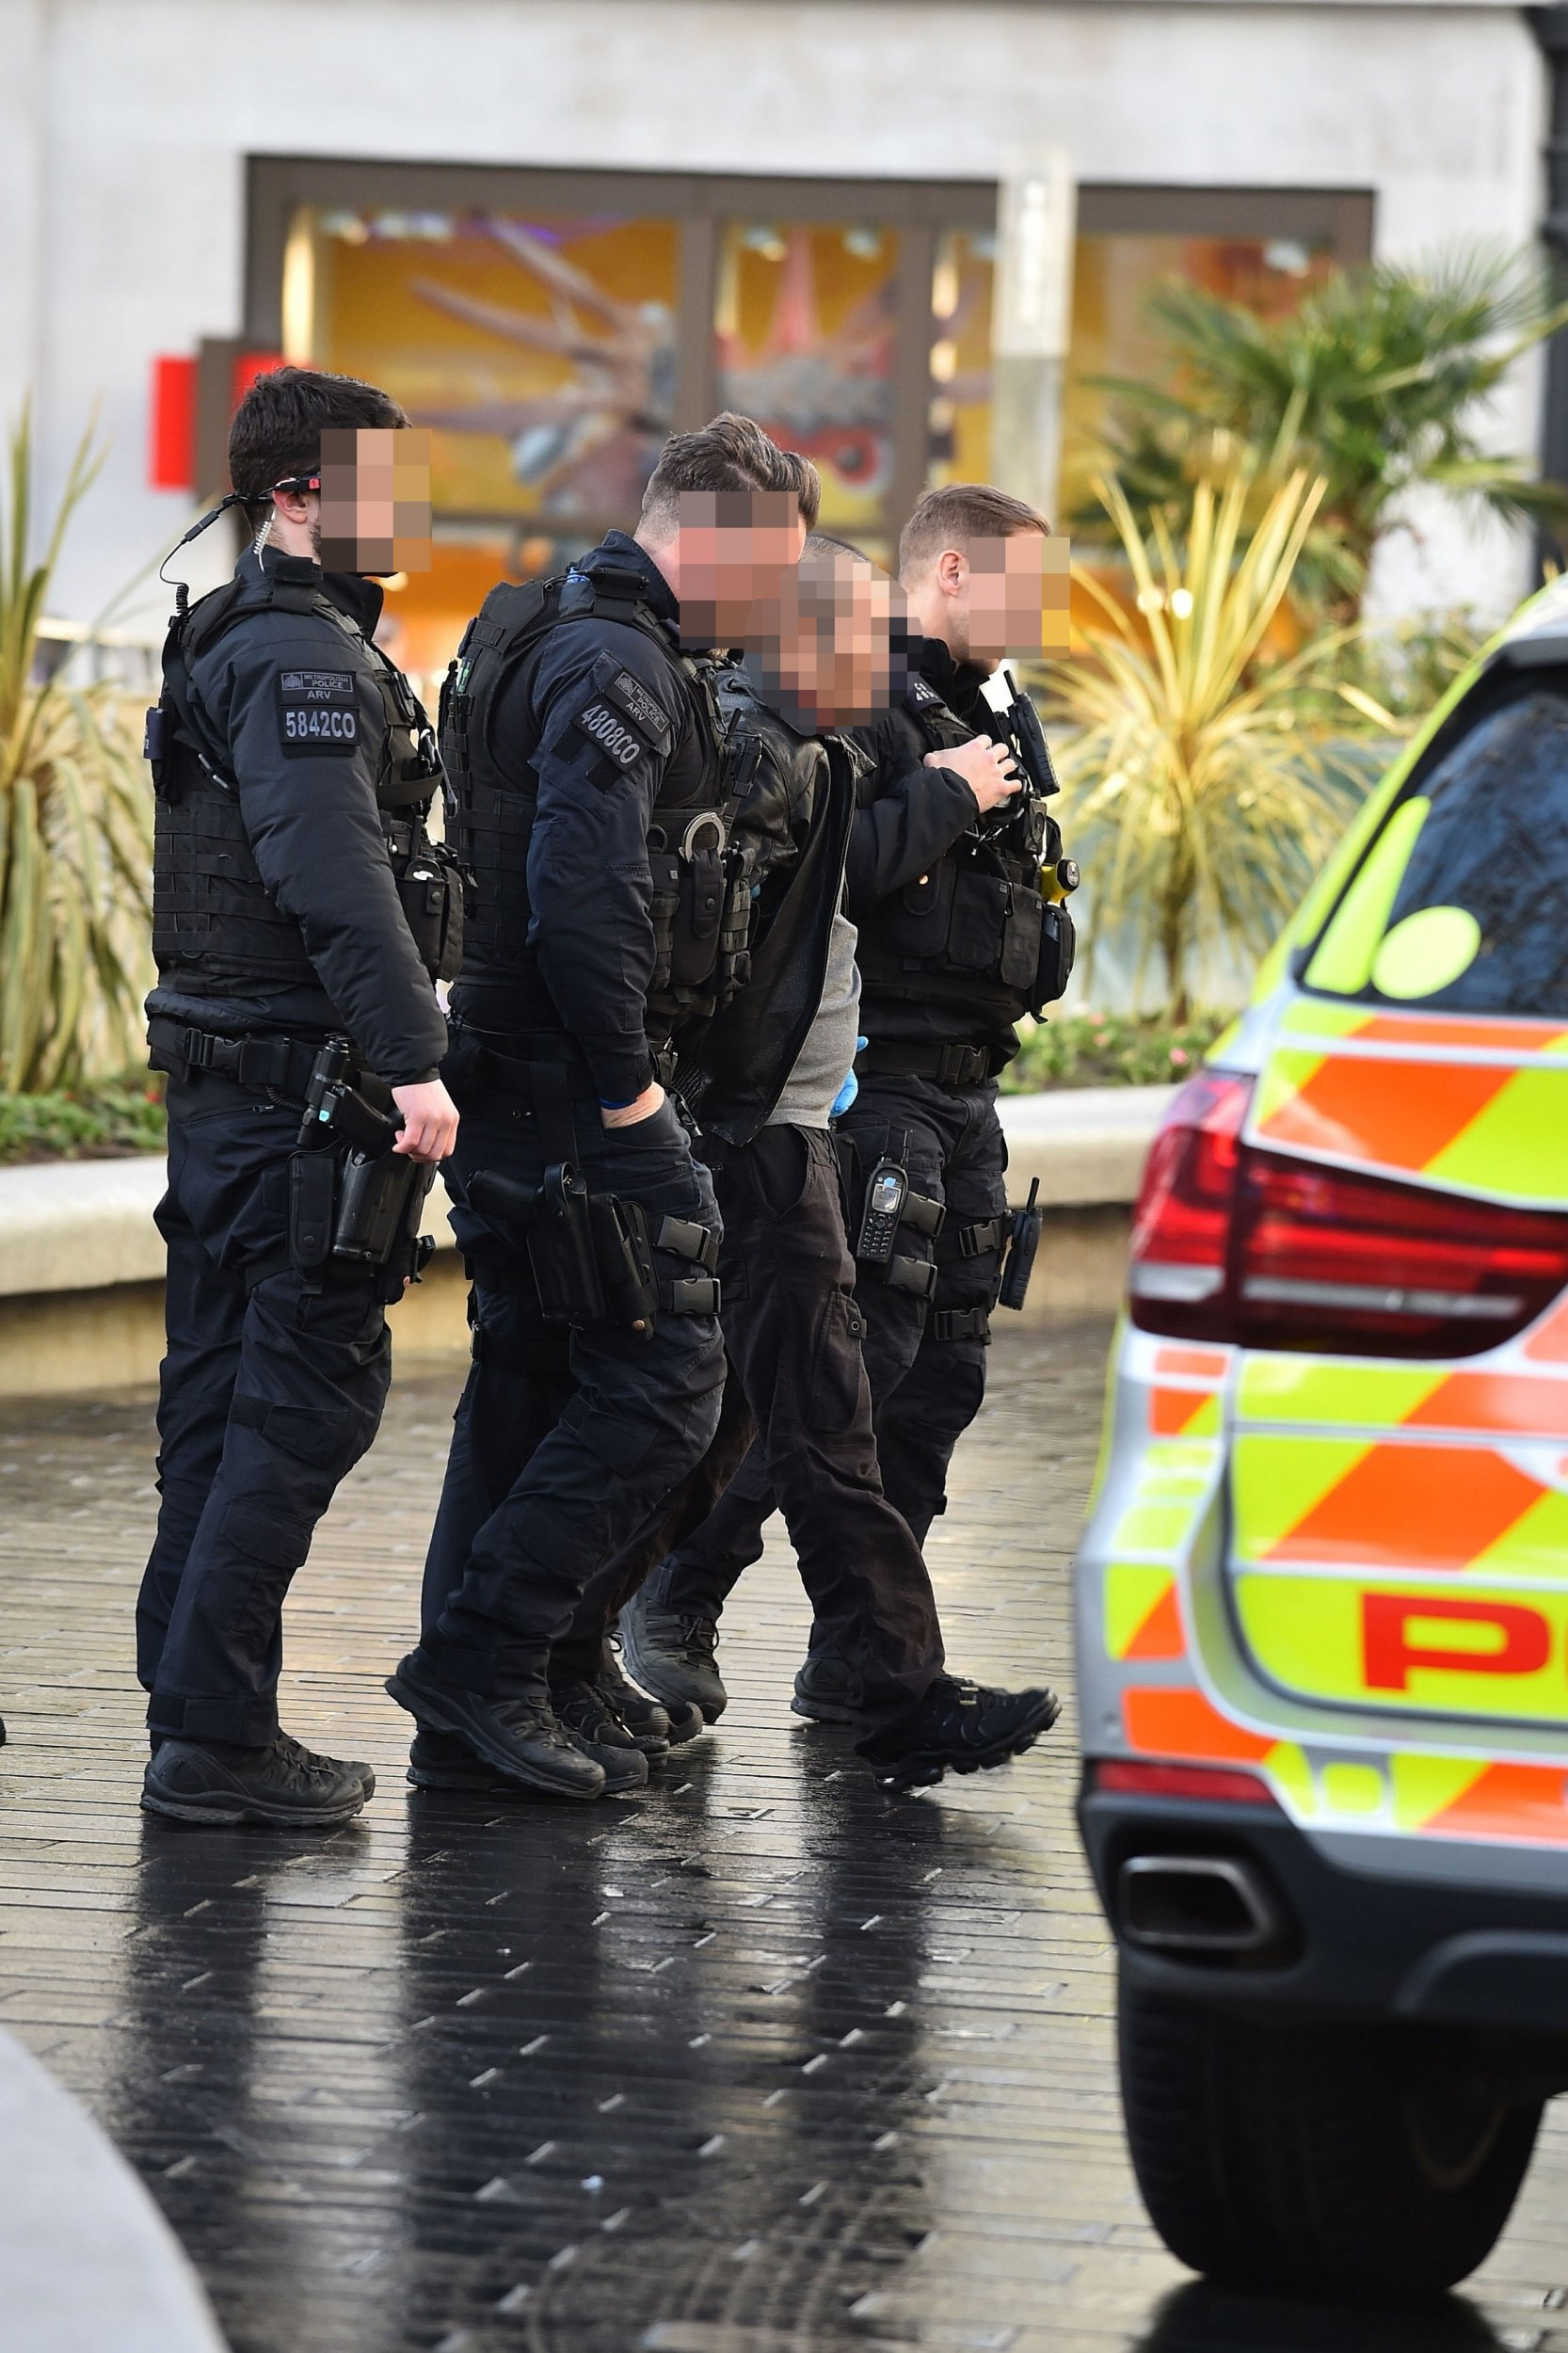 BGUK_1490786 - London, UNITED KINGDOM - Armed Police respond to a report of a man with a gun in Leicester Square this morning & detain a male and police recover a firearm. the male was then taken away from the scene in a Police van. Pictured: Police BACKGRID UK 19 FEBRUARY 2019 BYLINE MUST READ: RUSHEN / BACKGRID UK: +44 208 344 2007 / uksales@backgrid.com USA: +1 310 798 9111 / usasales@backgrid.com *UK Clients - Pictures Containing Children Please Pixelate Face Prior To Publication*